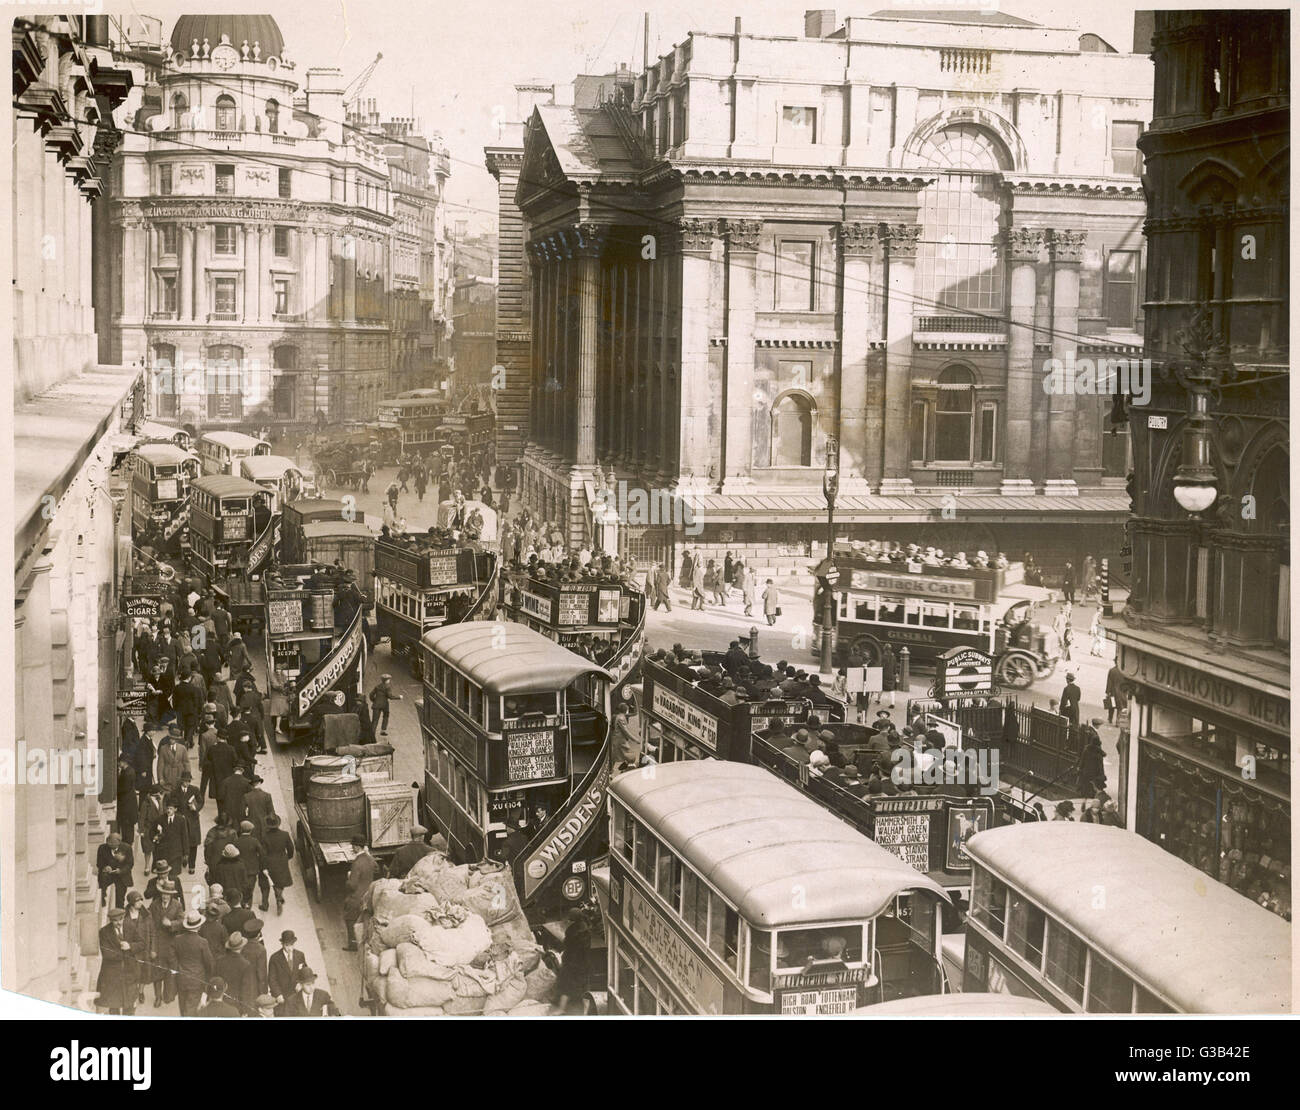 Seventeen buses jam the street  outside the Mansion House,  London - not to mention the  wagons, parked or moving. - Stock Image